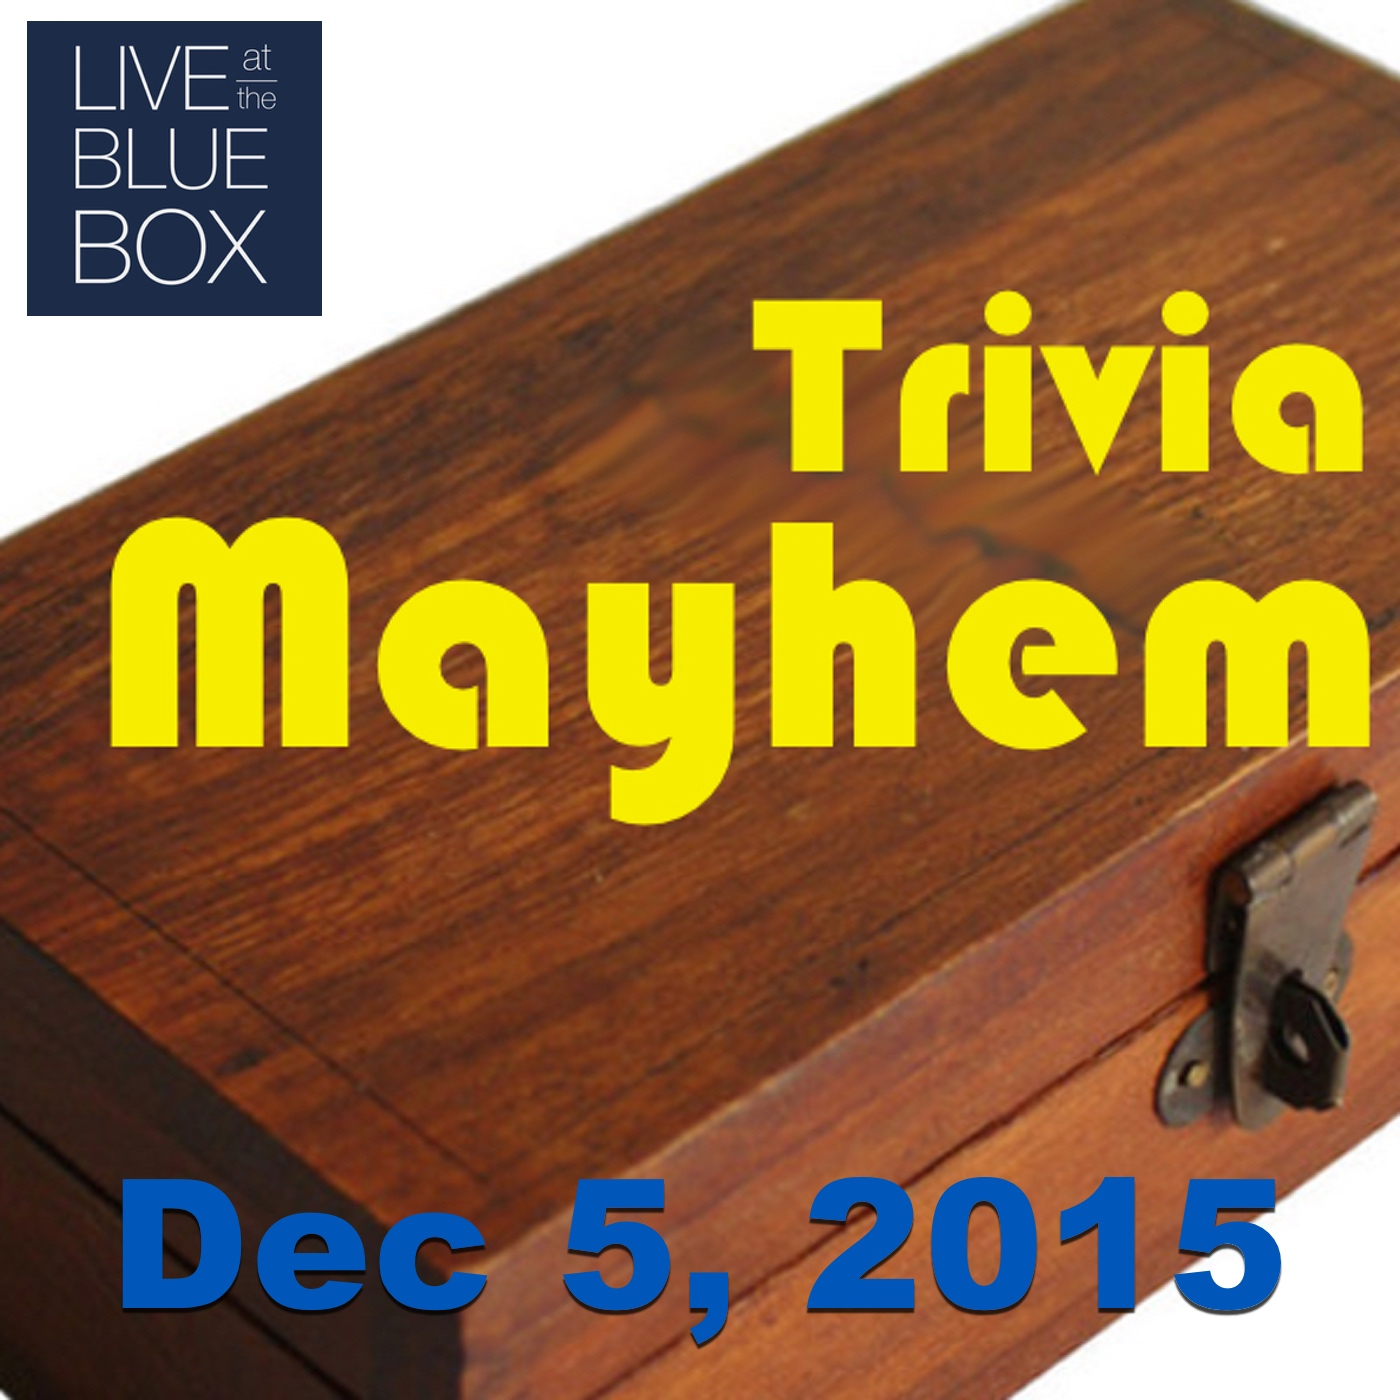 Trivia Mayhem 12-5-15 Live at the Blue Box